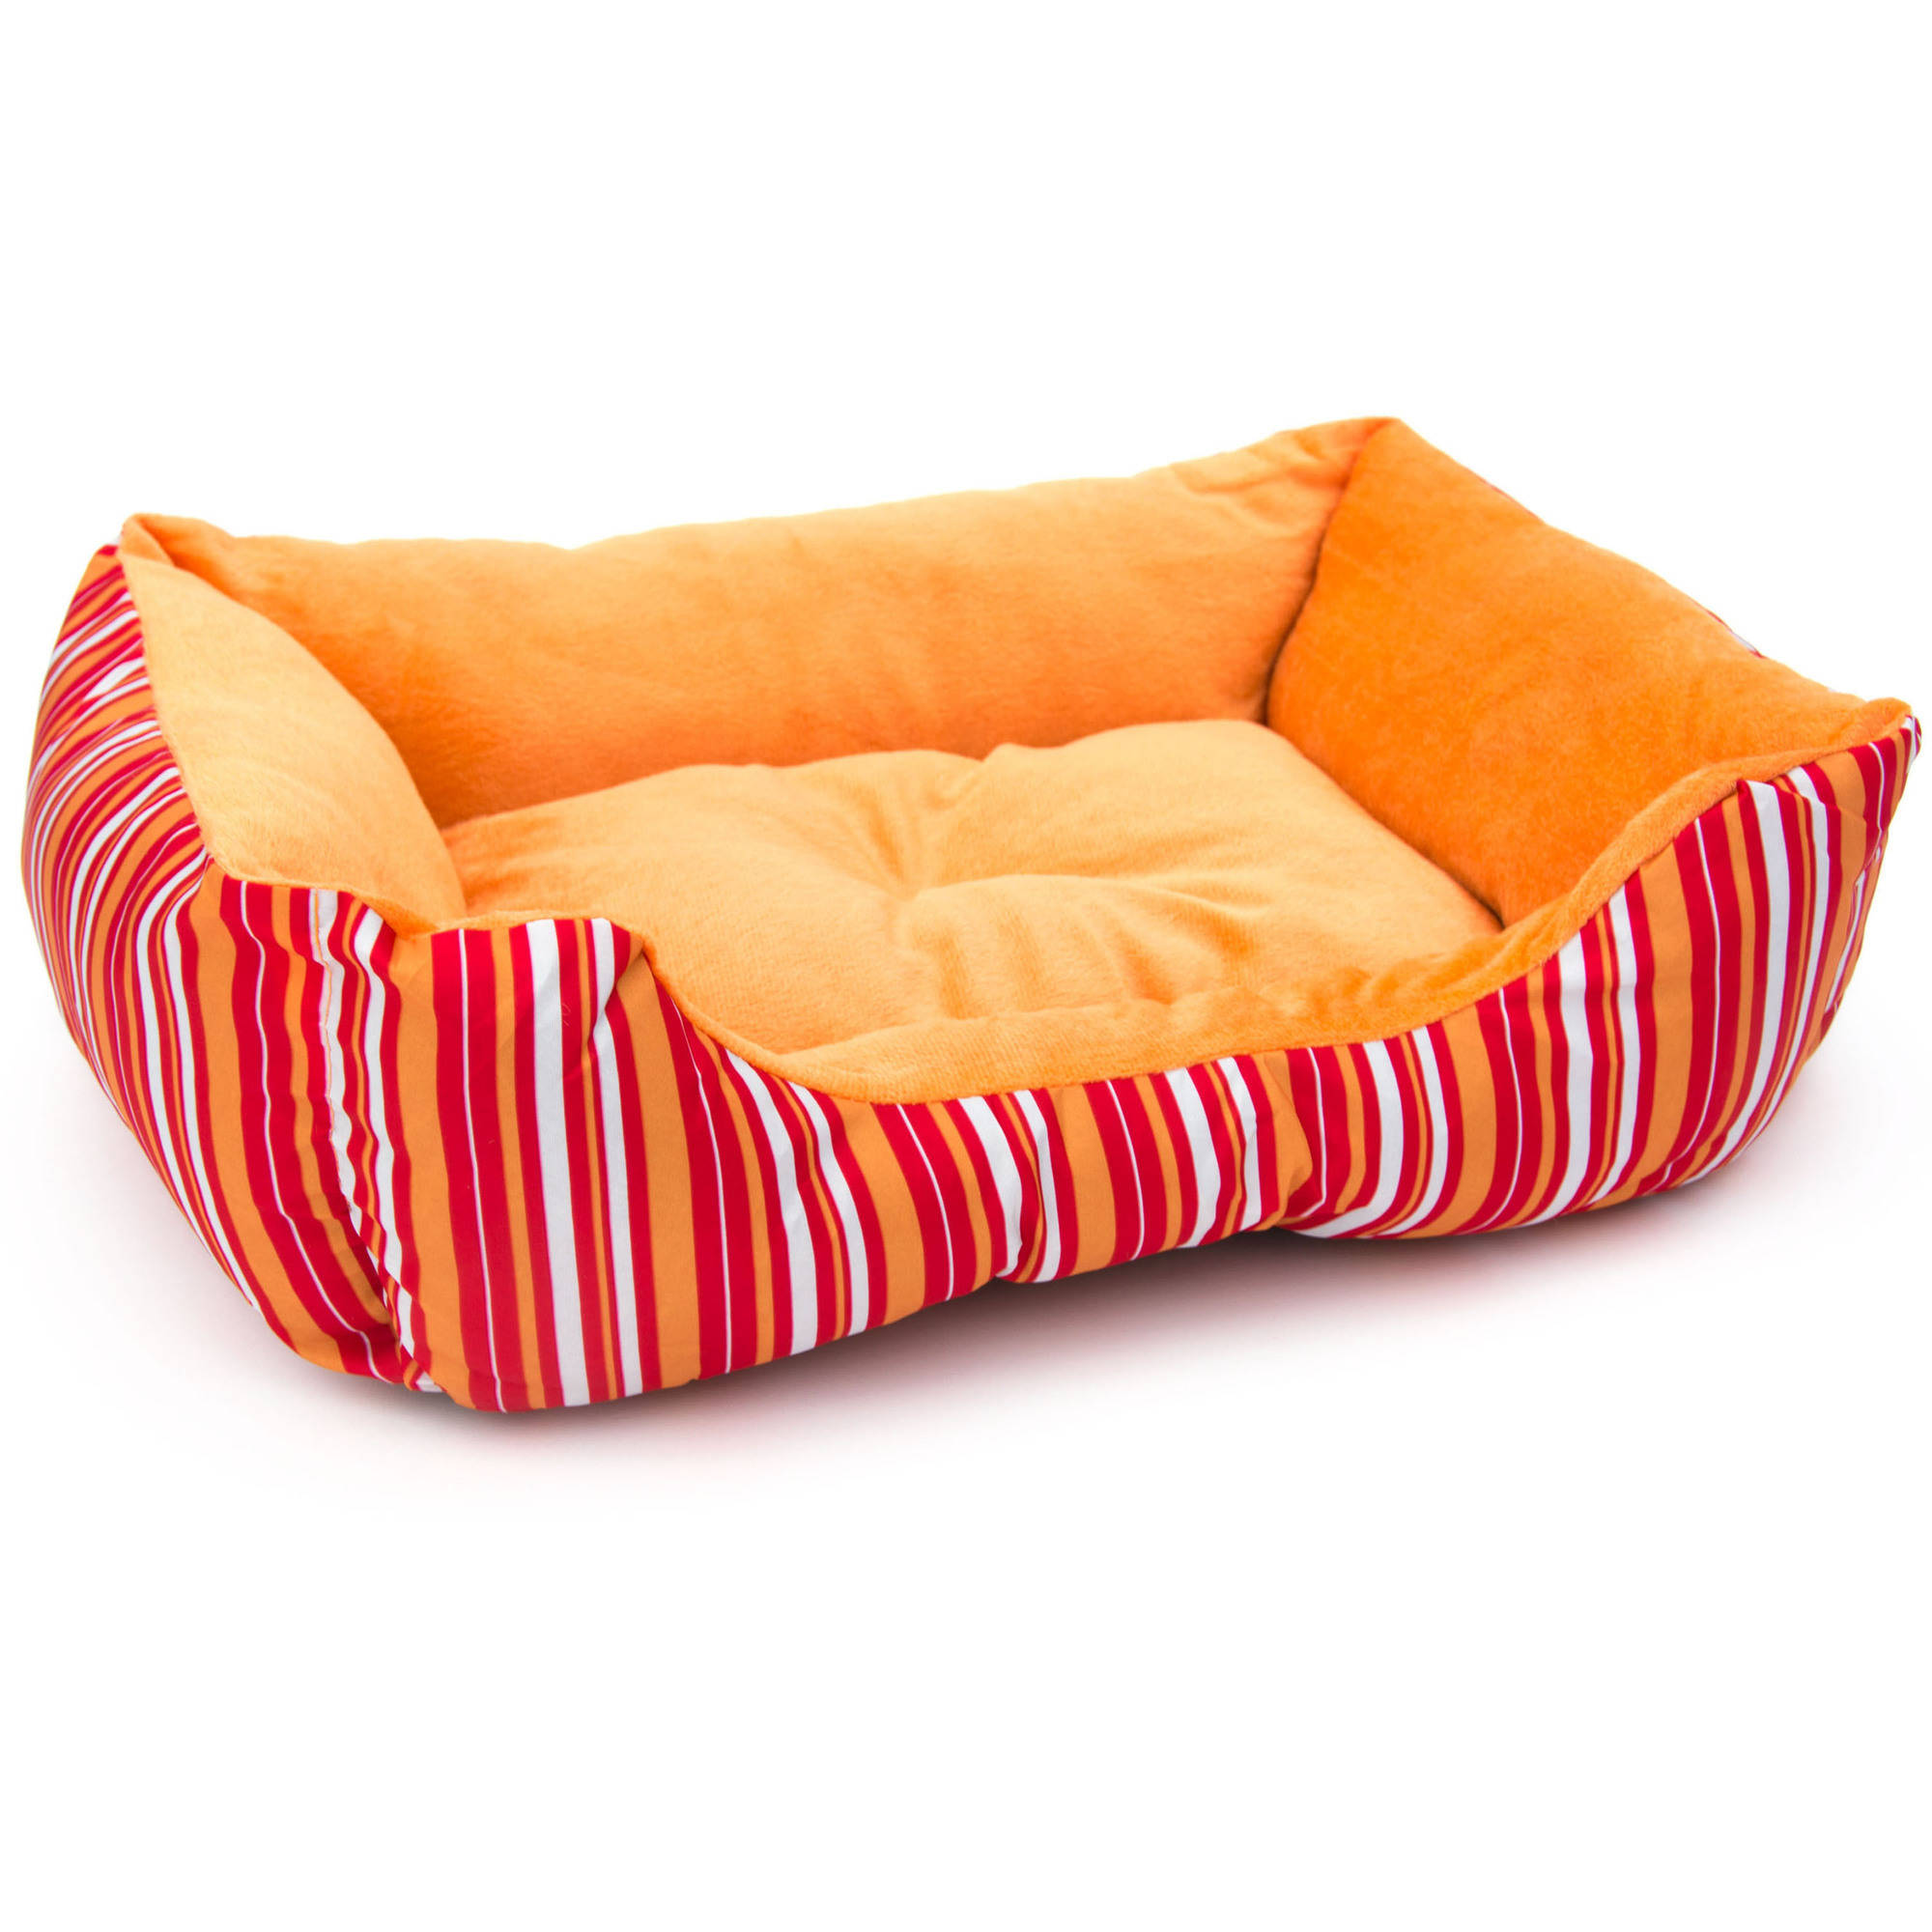 ALEKO Soft Plush Pet Cushion Crate Bed for Cats and Dogs, Small, Orange Stripes